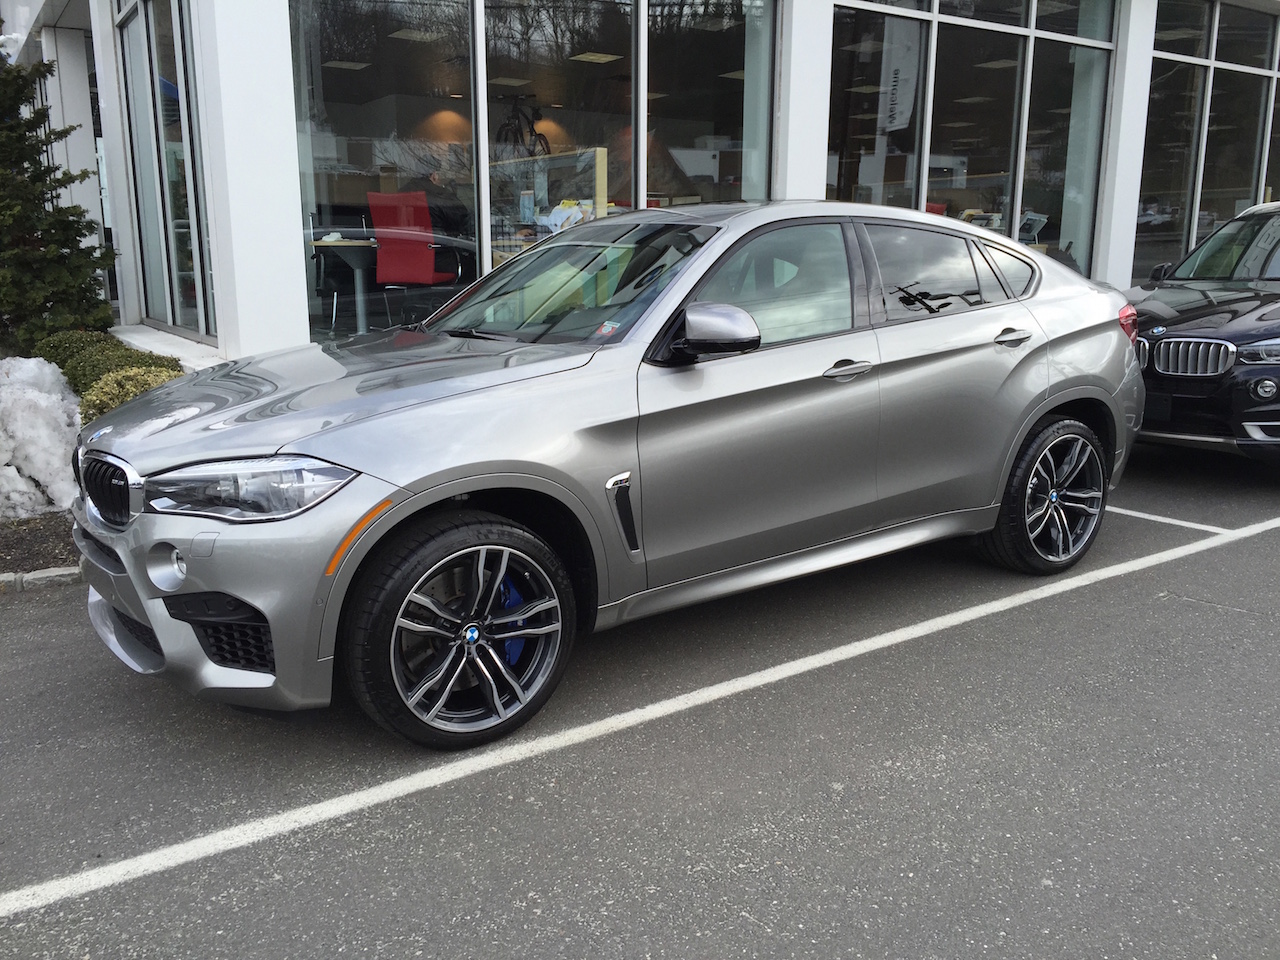 Delivered X6m Donington Grey 2015 Pics To Chrome Or